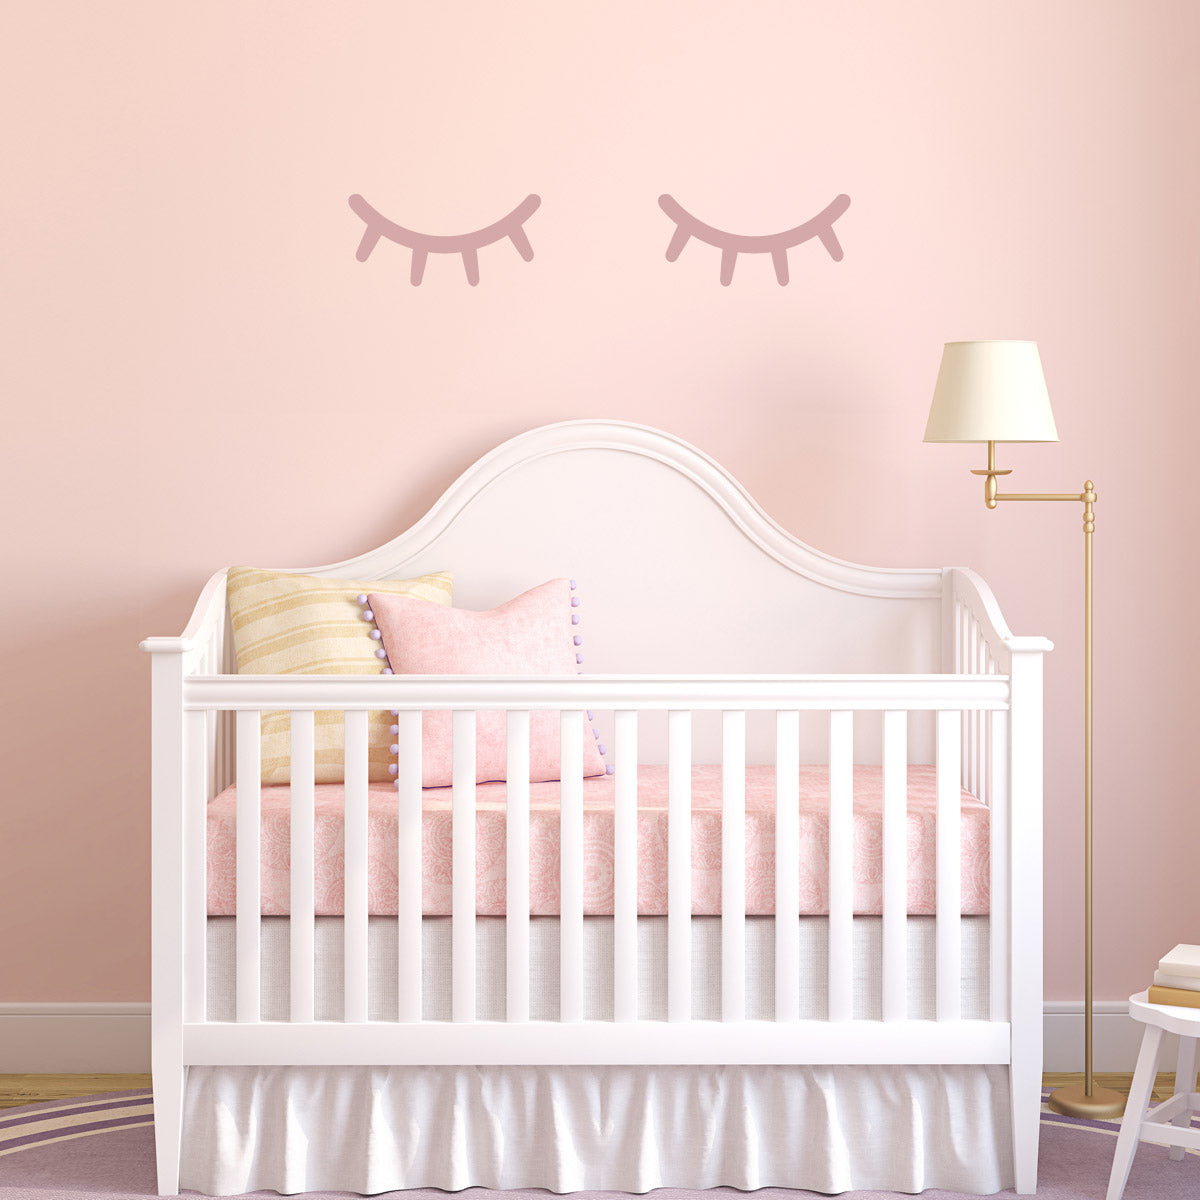 CraftsStar Sleepy Eyes Wall Stencil in Nursery